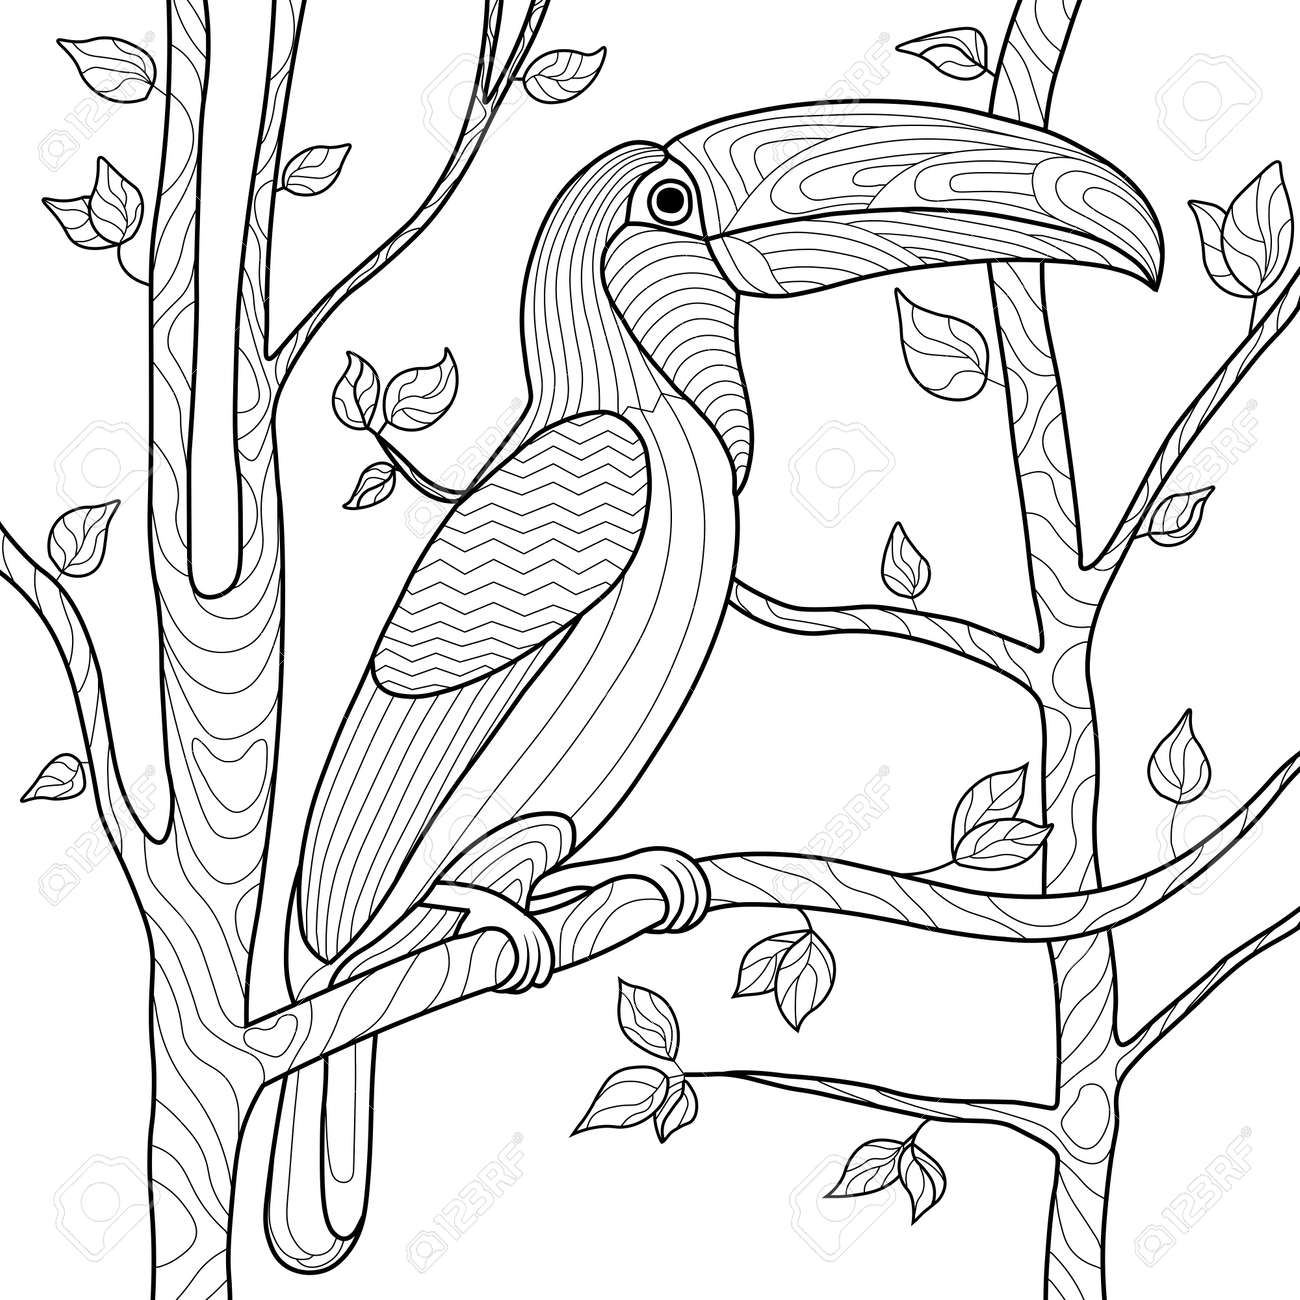 - Toucan Bird Coloring Book For Adults Vector Illustration. Anti